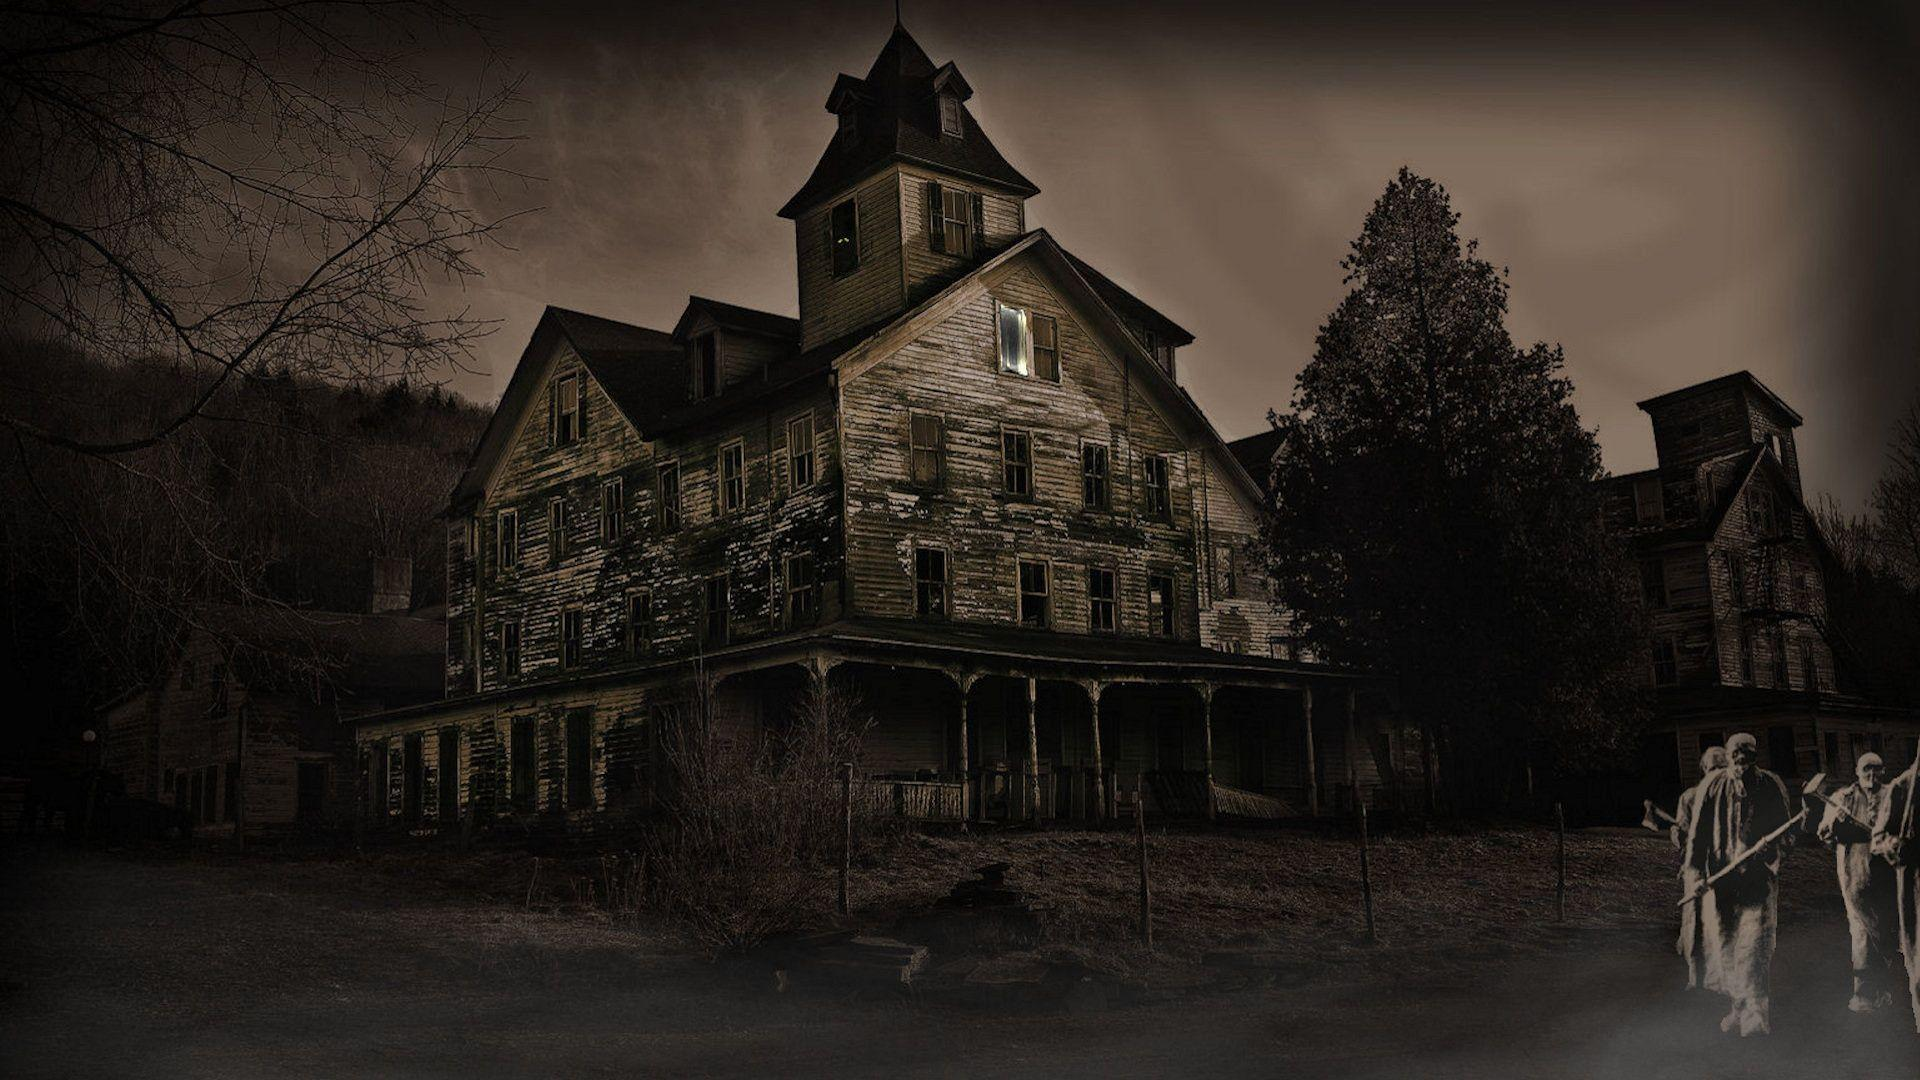 Haunted house wallpapers desktop wallpaper cave for Classic house wallpaper